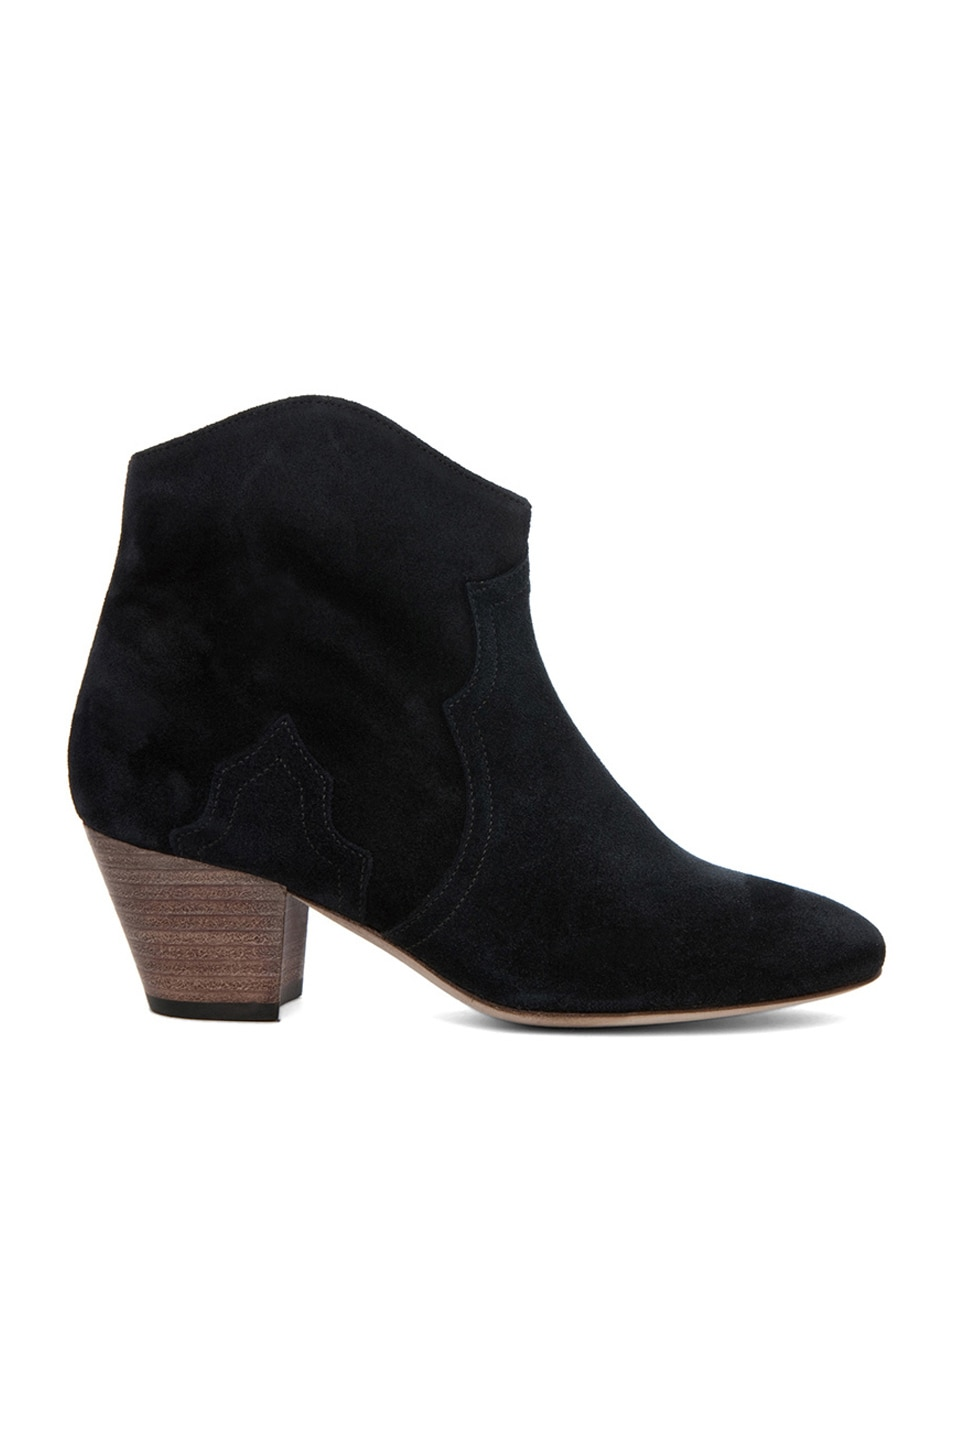 Image 1 of Isabel Marant Dicker Calfskin Velvet Leather Booties in Anthracite